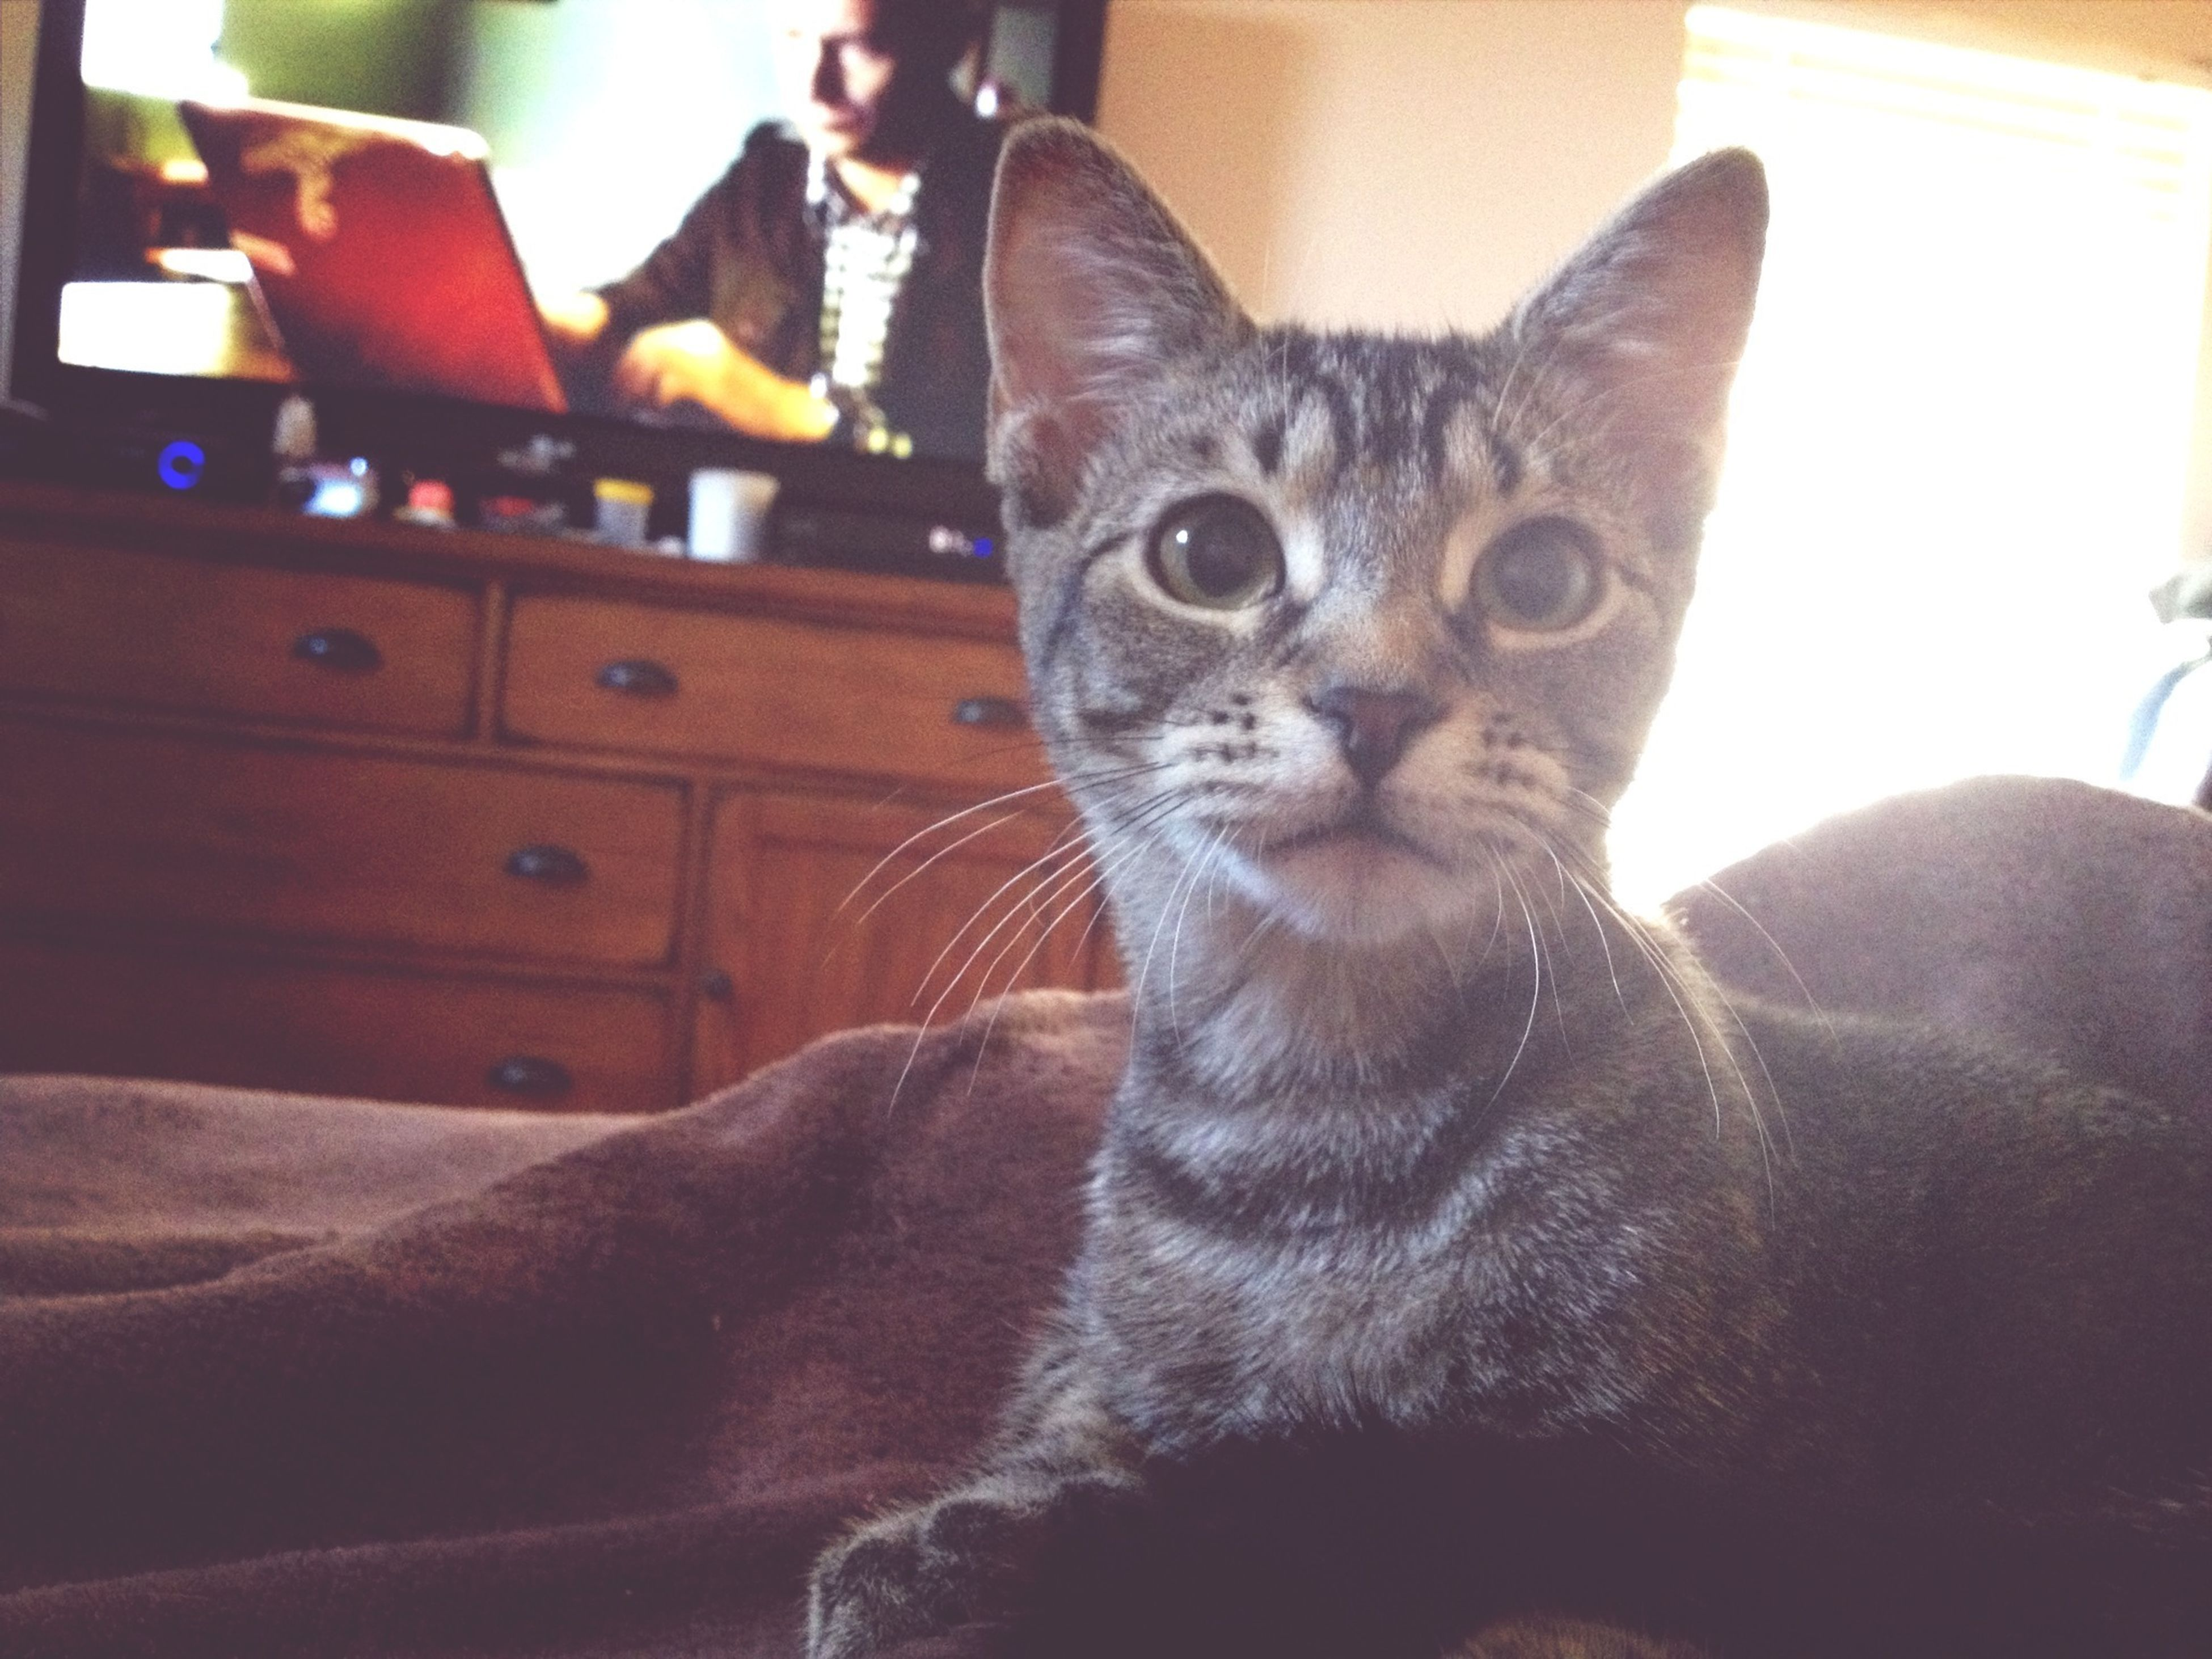 domestic cat, cat, pets, domestic animals, feline, indoors, one animal, mammal, animal themes, whisker, portrait, looking at camera, home interior, sitting, relaxation, staring, close-up, front view, alertness